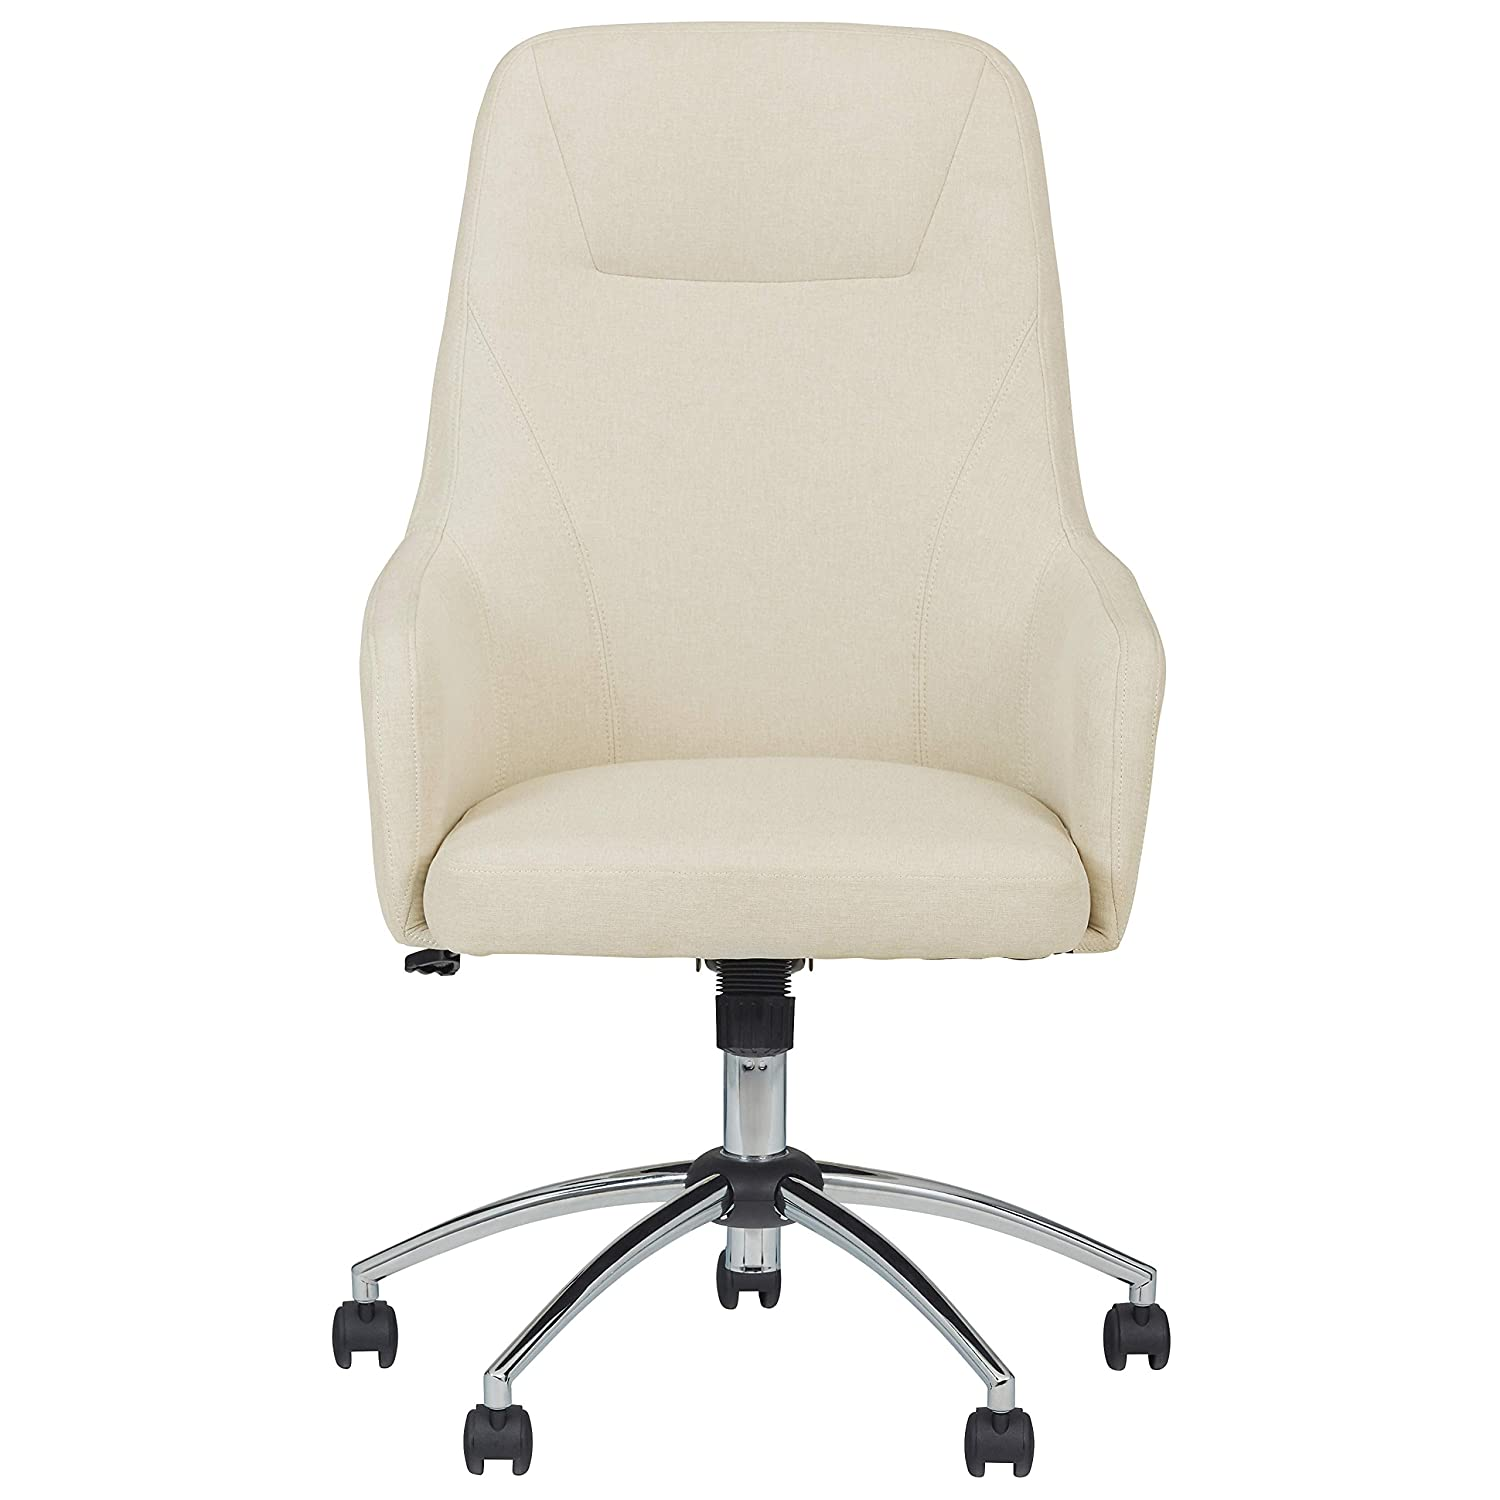 Cool Stone Beam Modern Upholstered High Back Swivel Chair 25 2W Beige Cjindustries Chair Design For Home Cjindustriesco